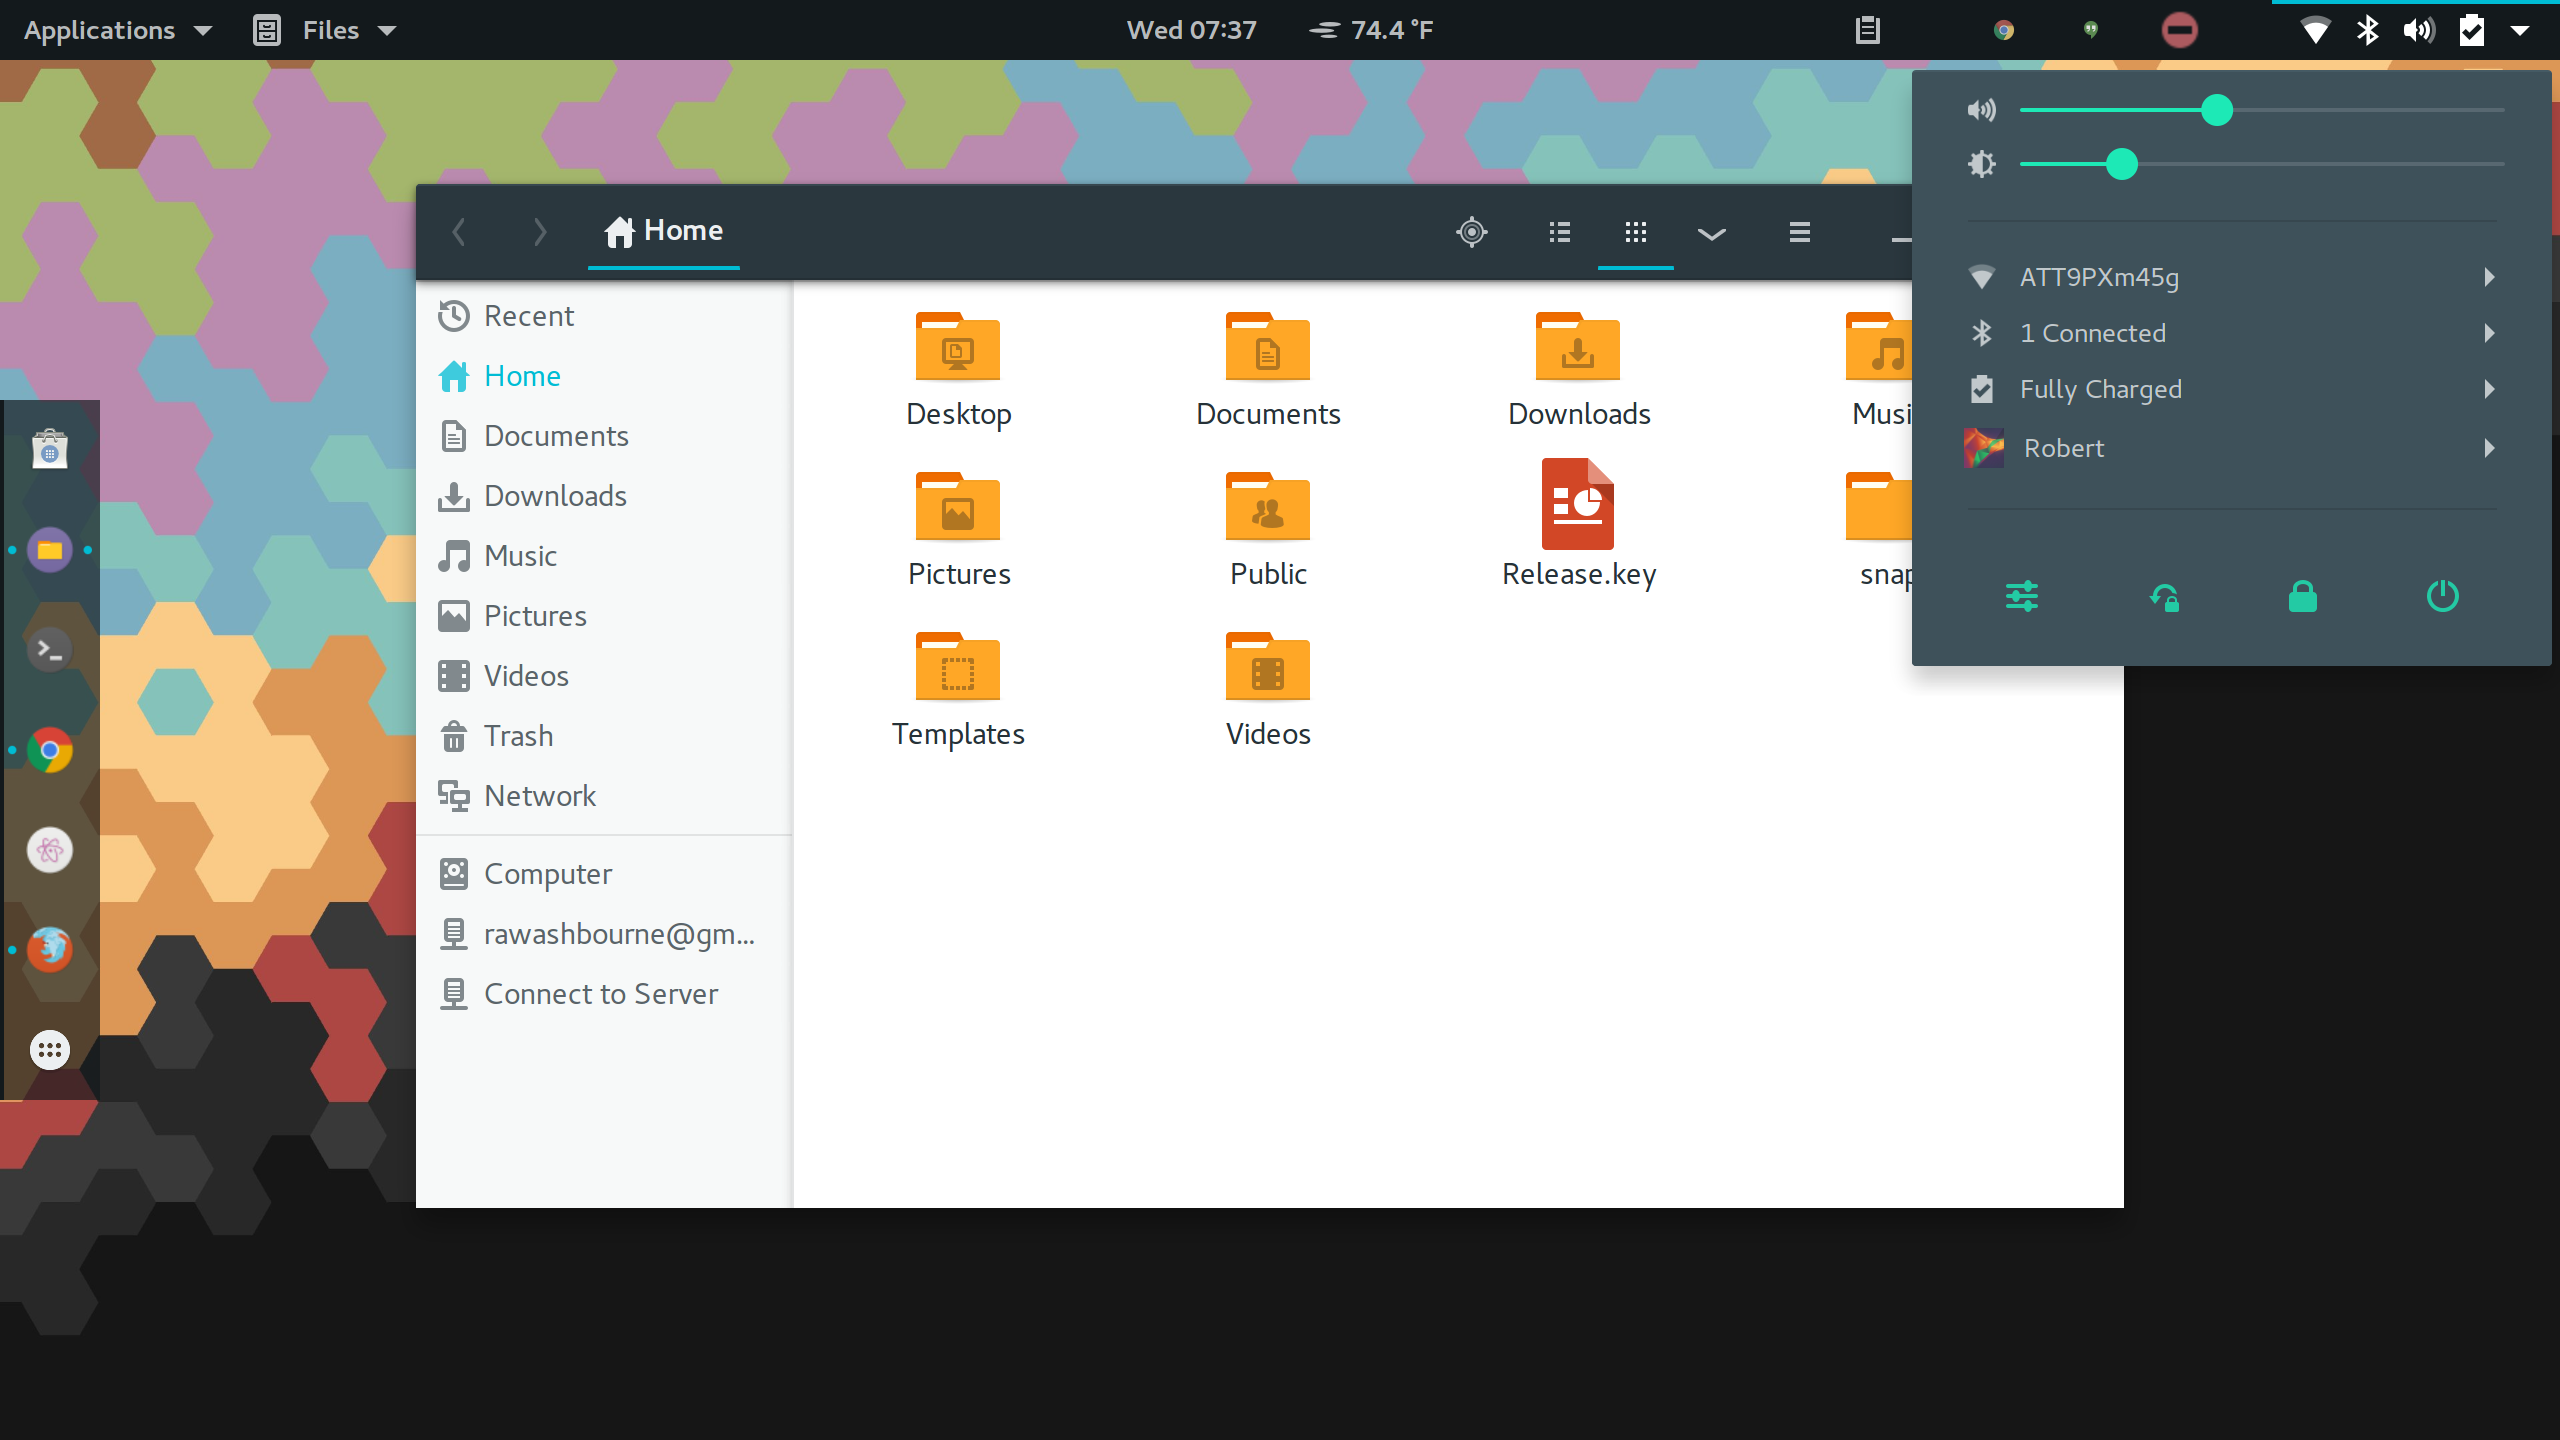 GNOME Shell has some good looks by default, but it can be